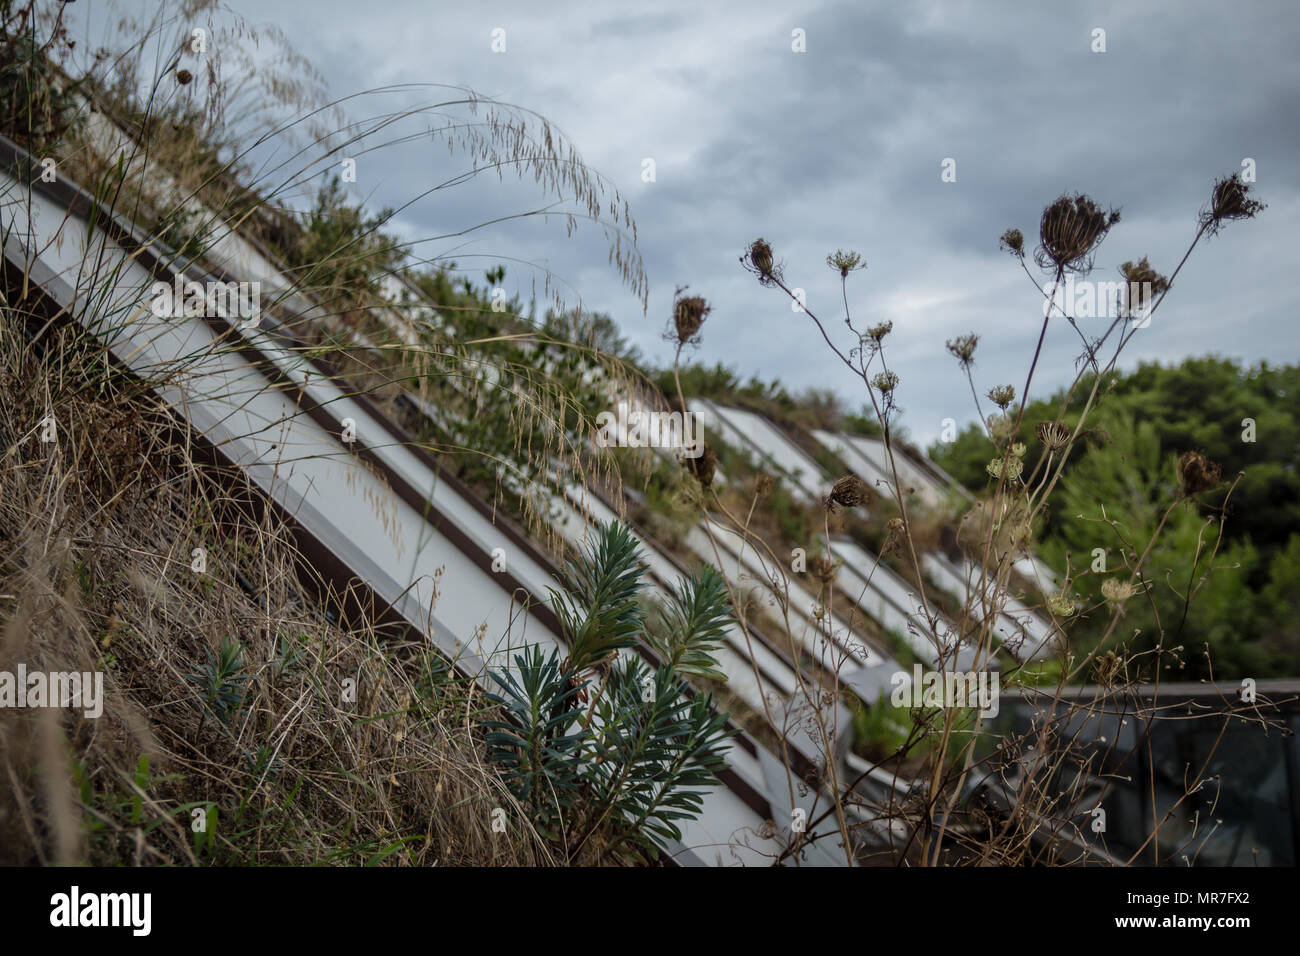 Building with grass and vegetation along balconies on cold winter day. - Stock Image